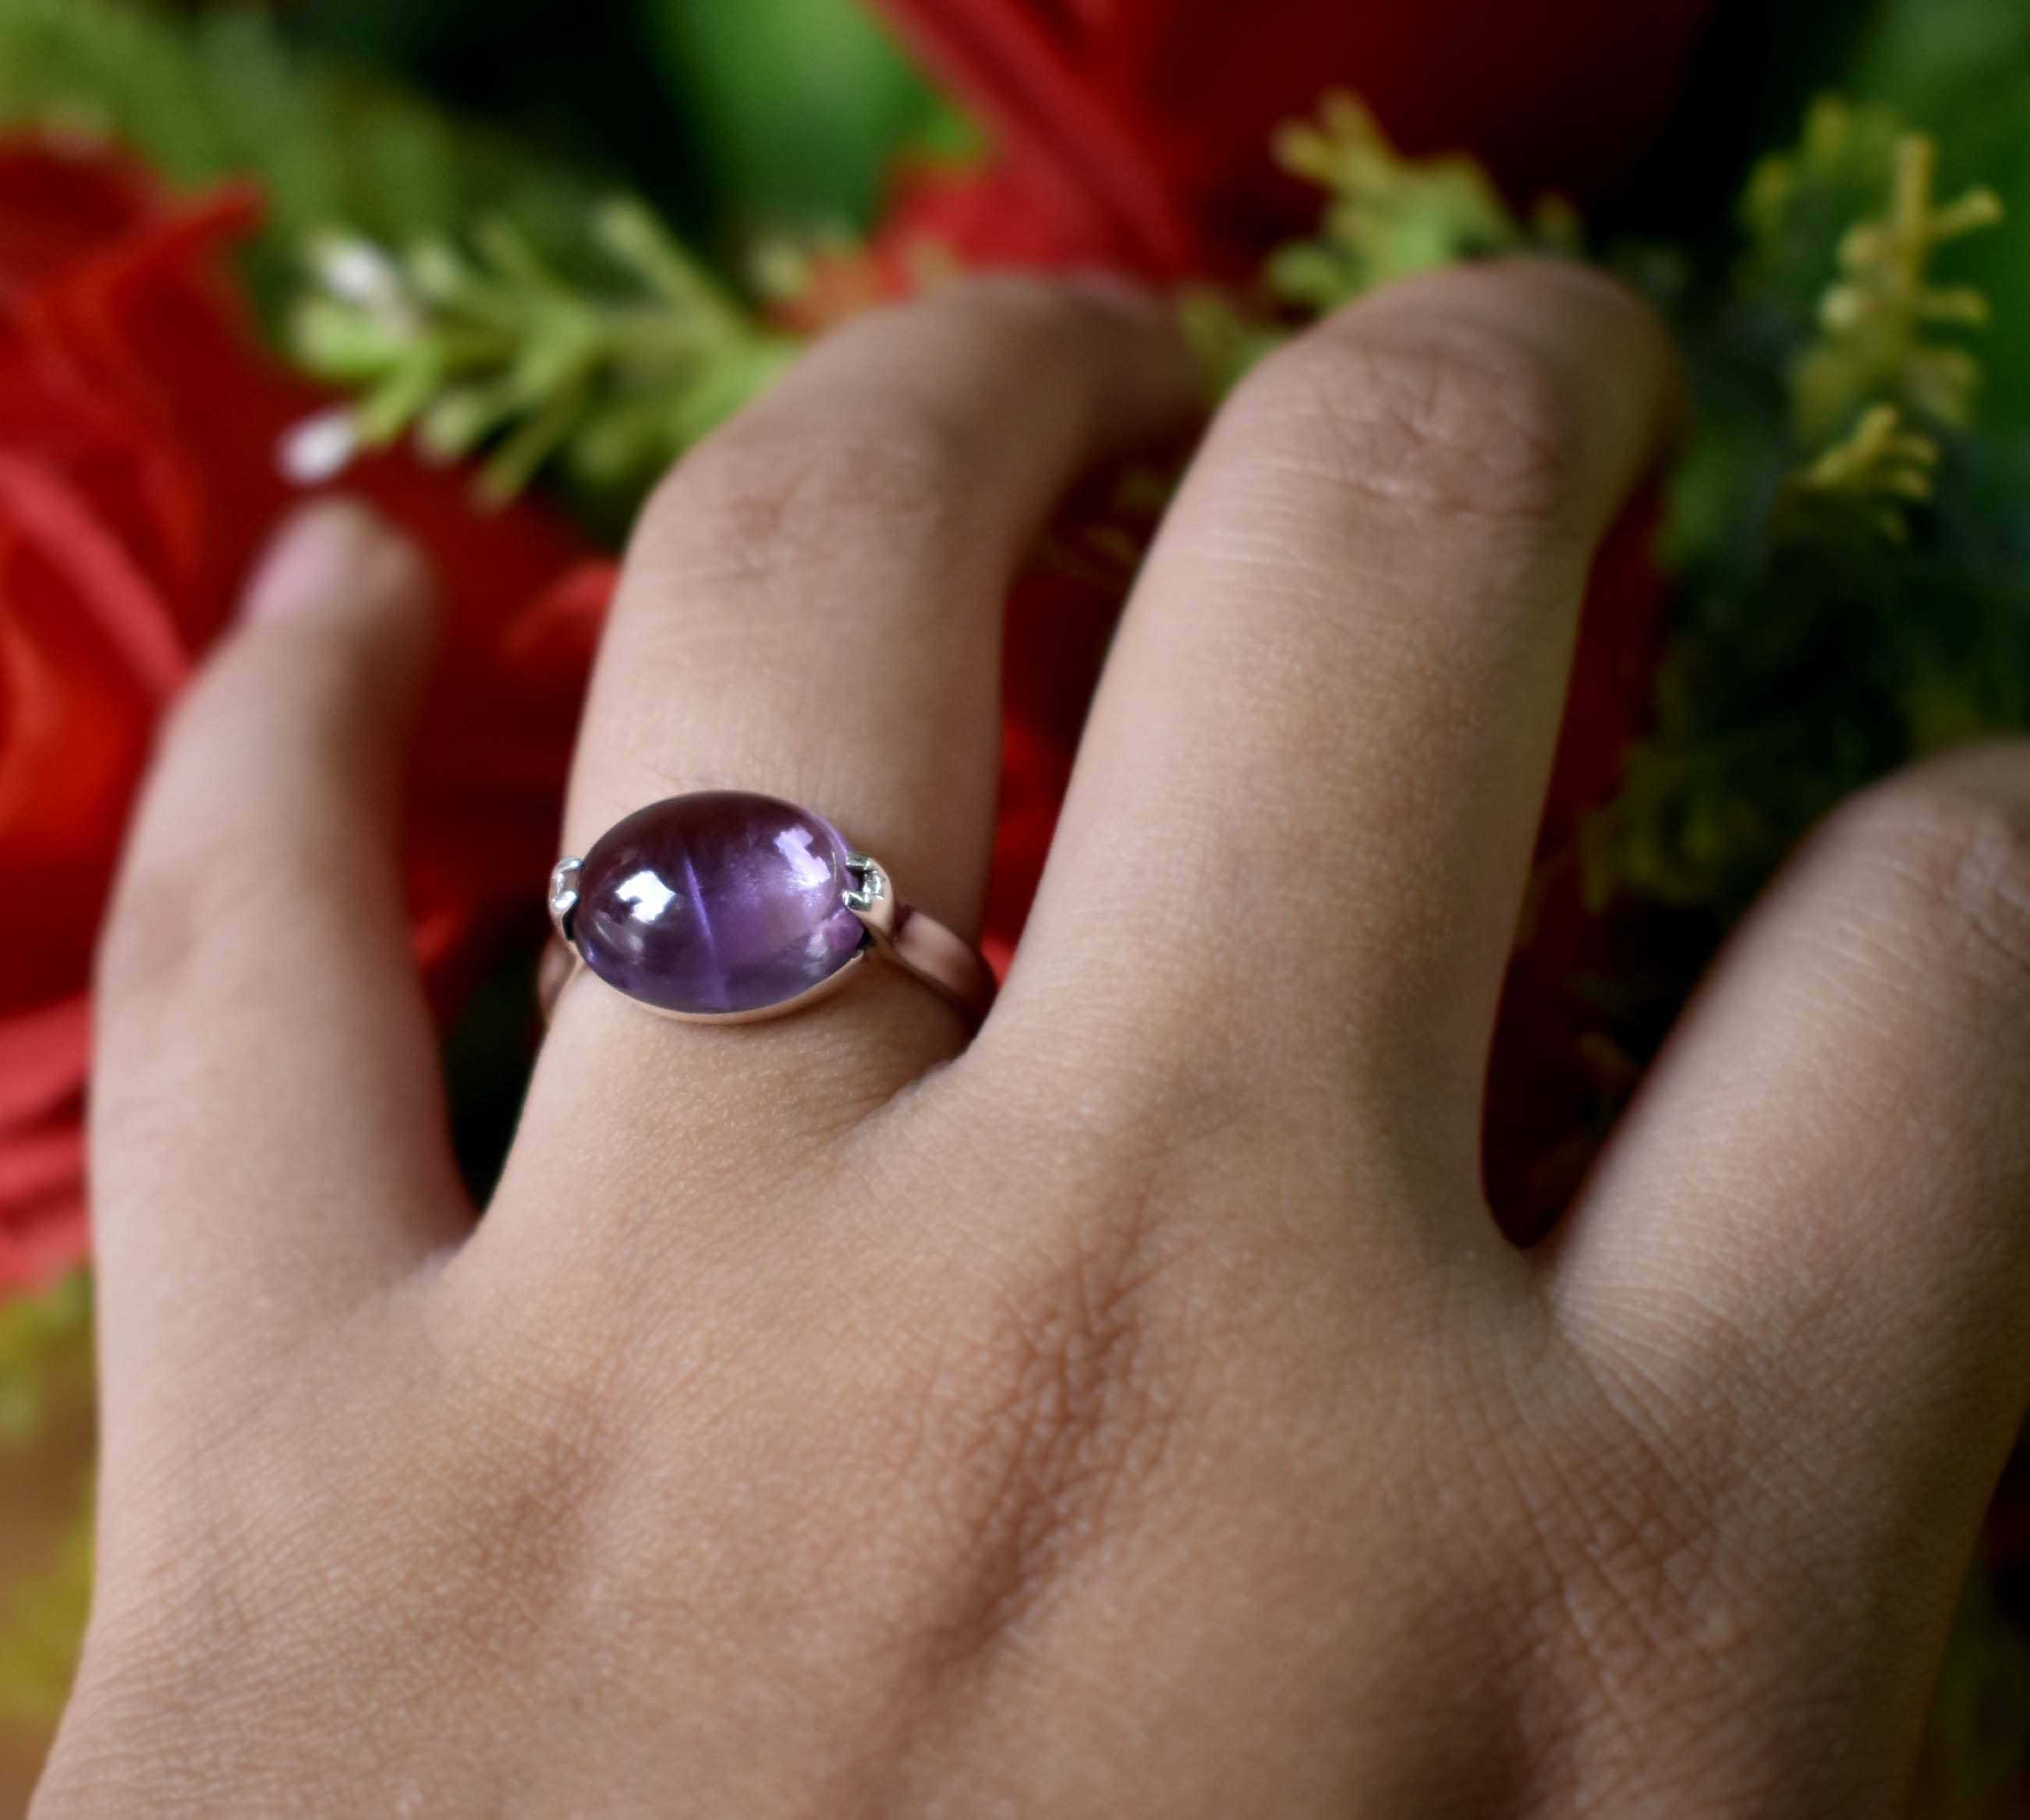 Manufacturer attract silver gemstone anniversary gift womens wholesale cabochon amethyst ring